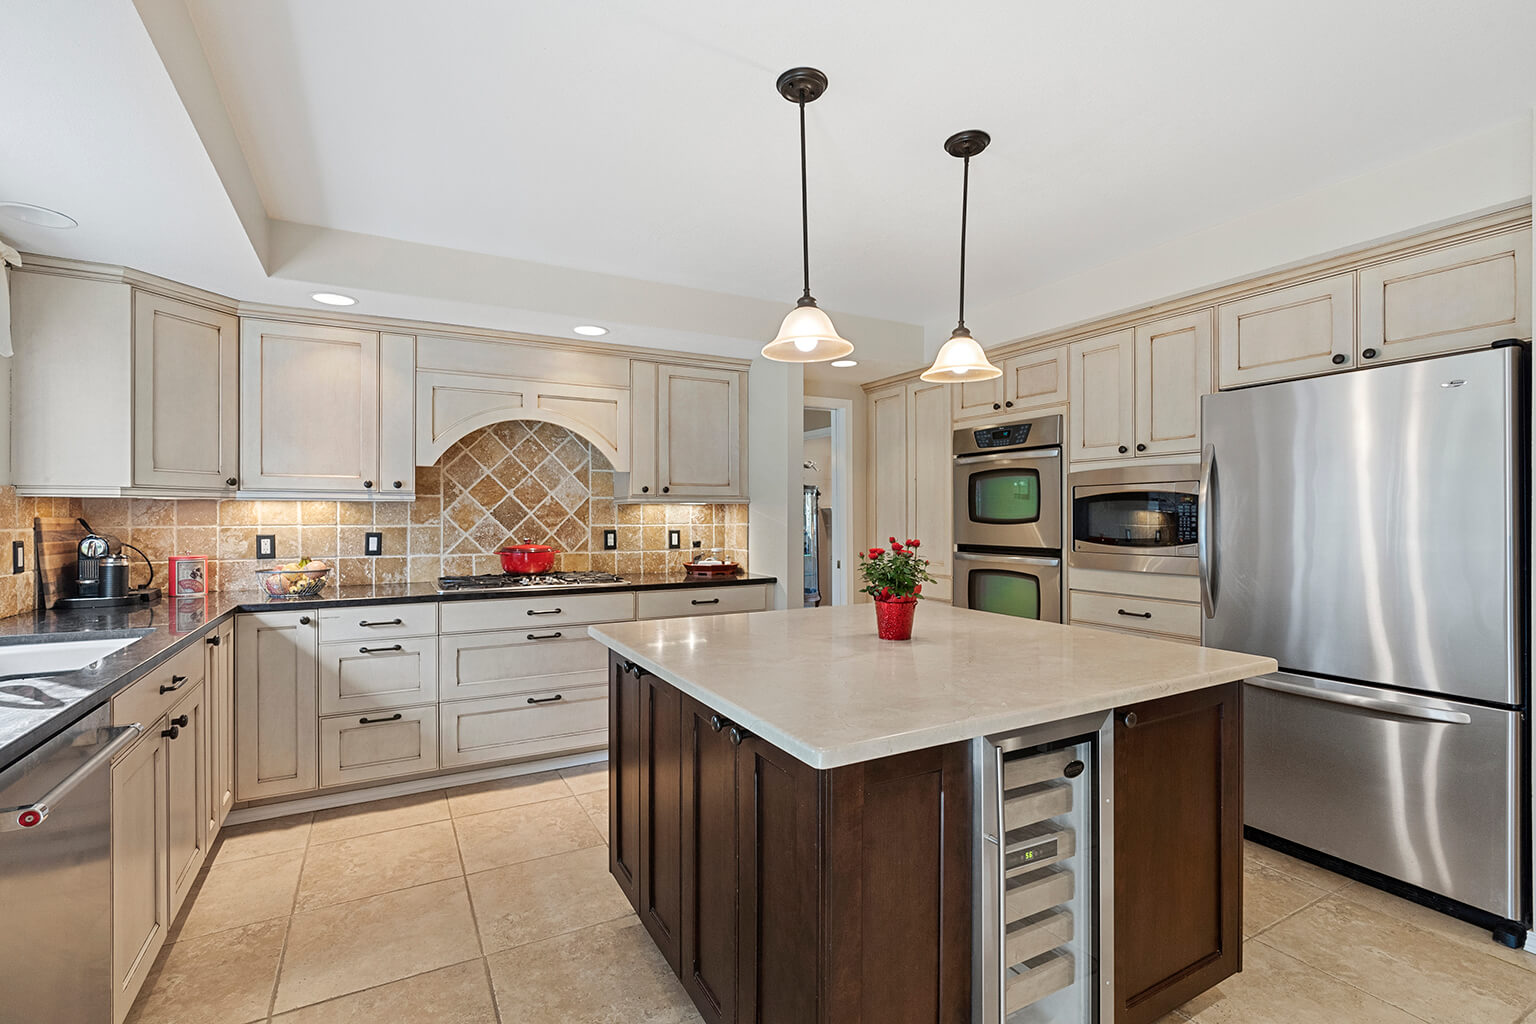 Updated gourmet kitchen with stainless appliances